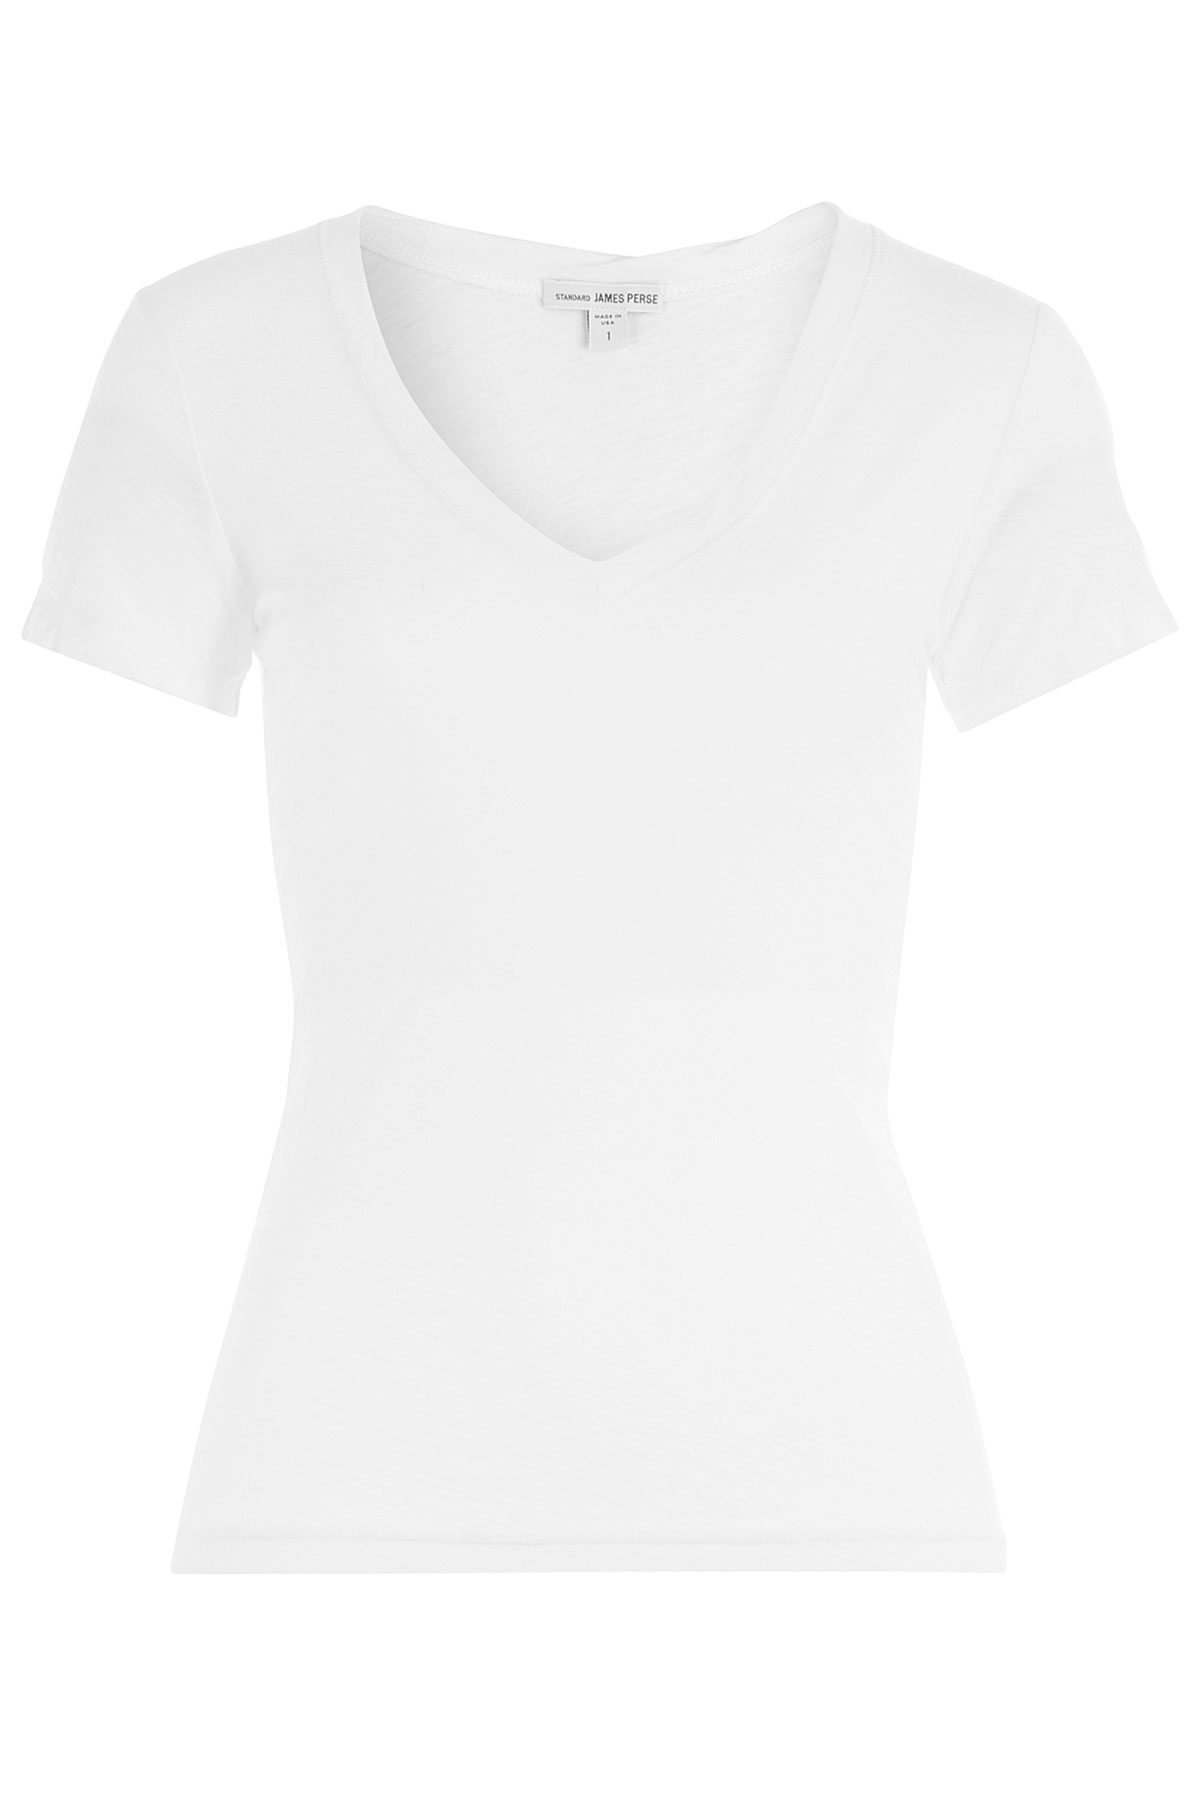 James perse cotton t shirt white in white lyst for James perse t shirts sale